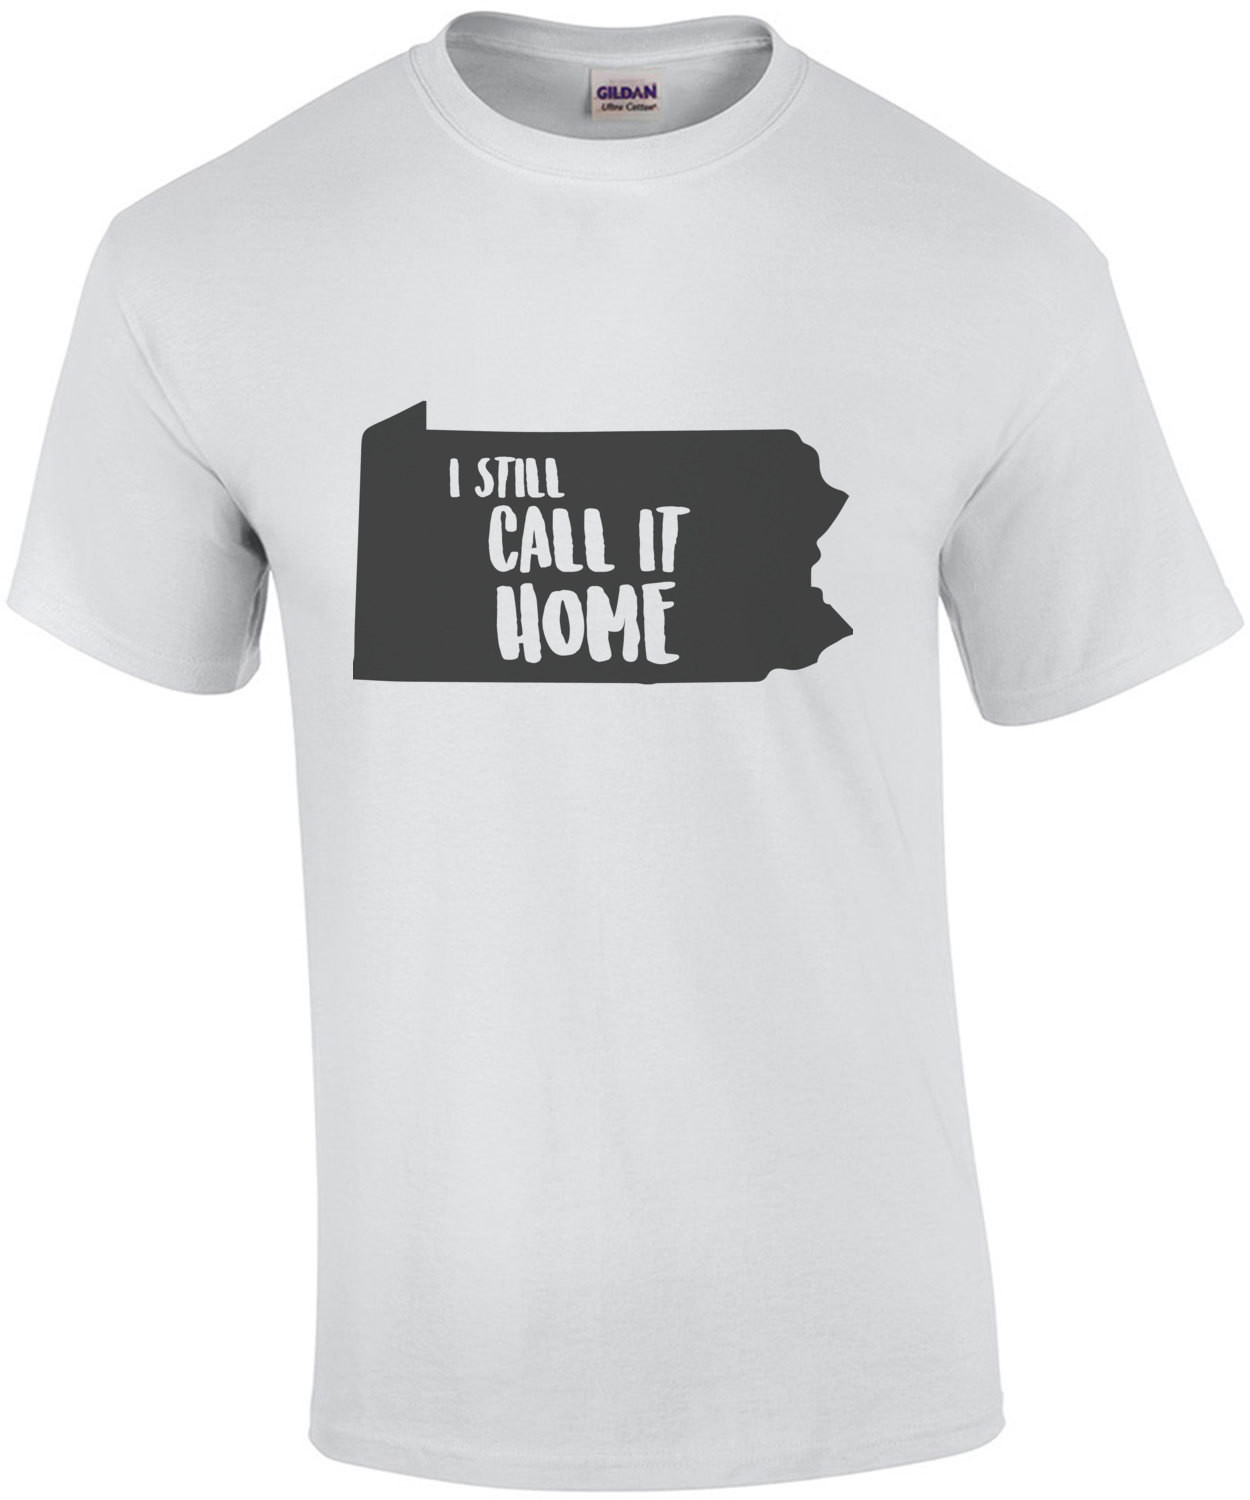 I still call it home - Pennsylvania T-Shirt